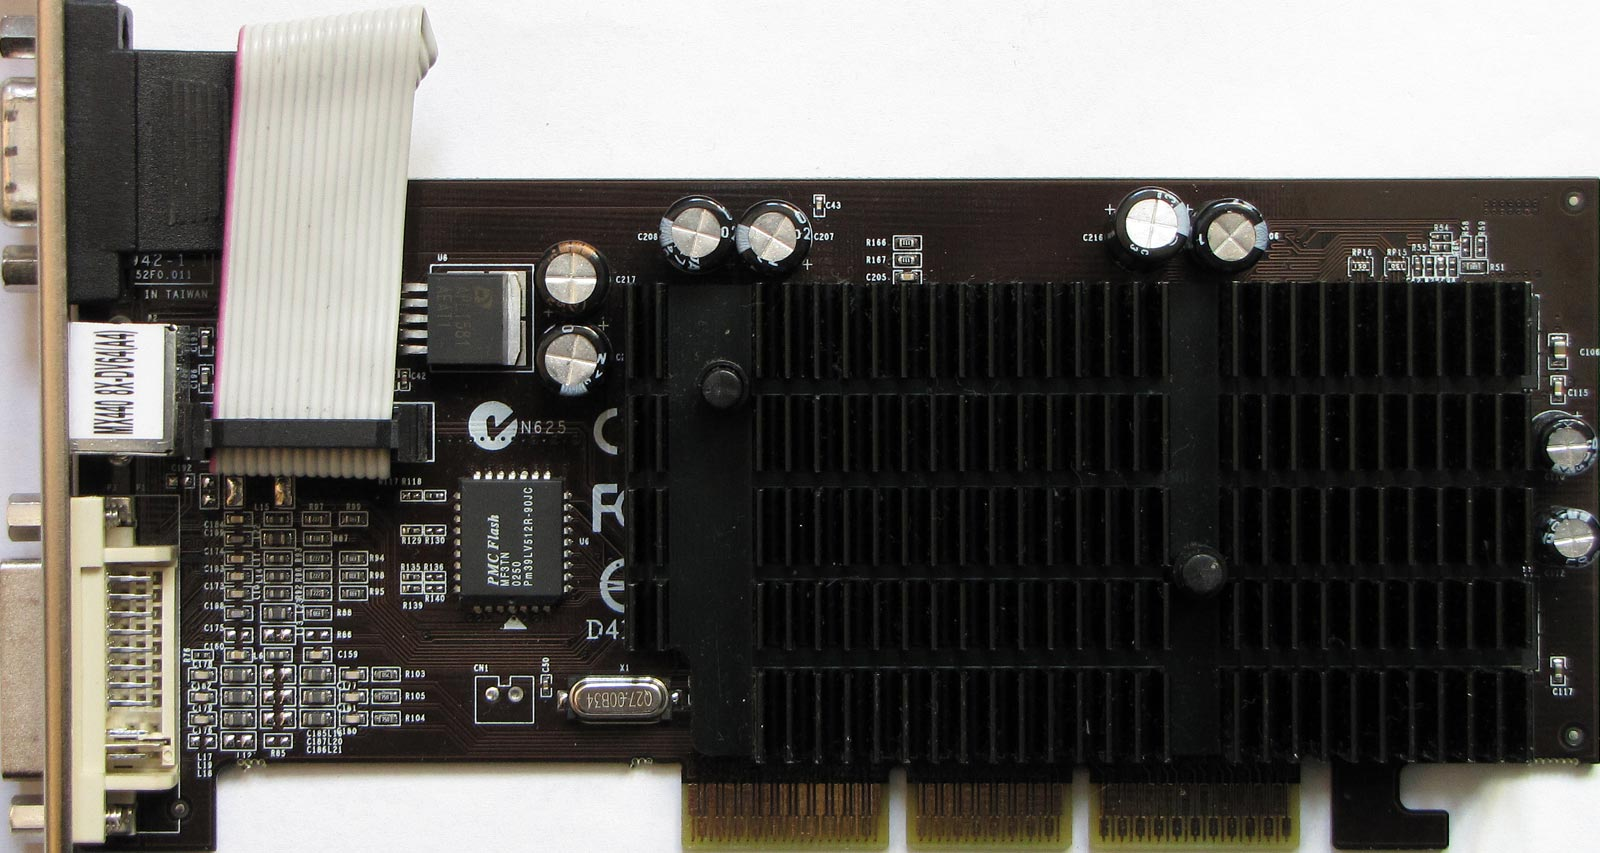 Vga Legacy Mkiii Search Results For Evans Pci 256 Mb Ddr2 8400gs 8300gs 2xnvidia Geforce4 Mx440se 64mb 250 333mhz 64bit Pine Pv T17l Qtfb Ok Unknown Noisy Cooler Nvidia Mx440 270 405mhz